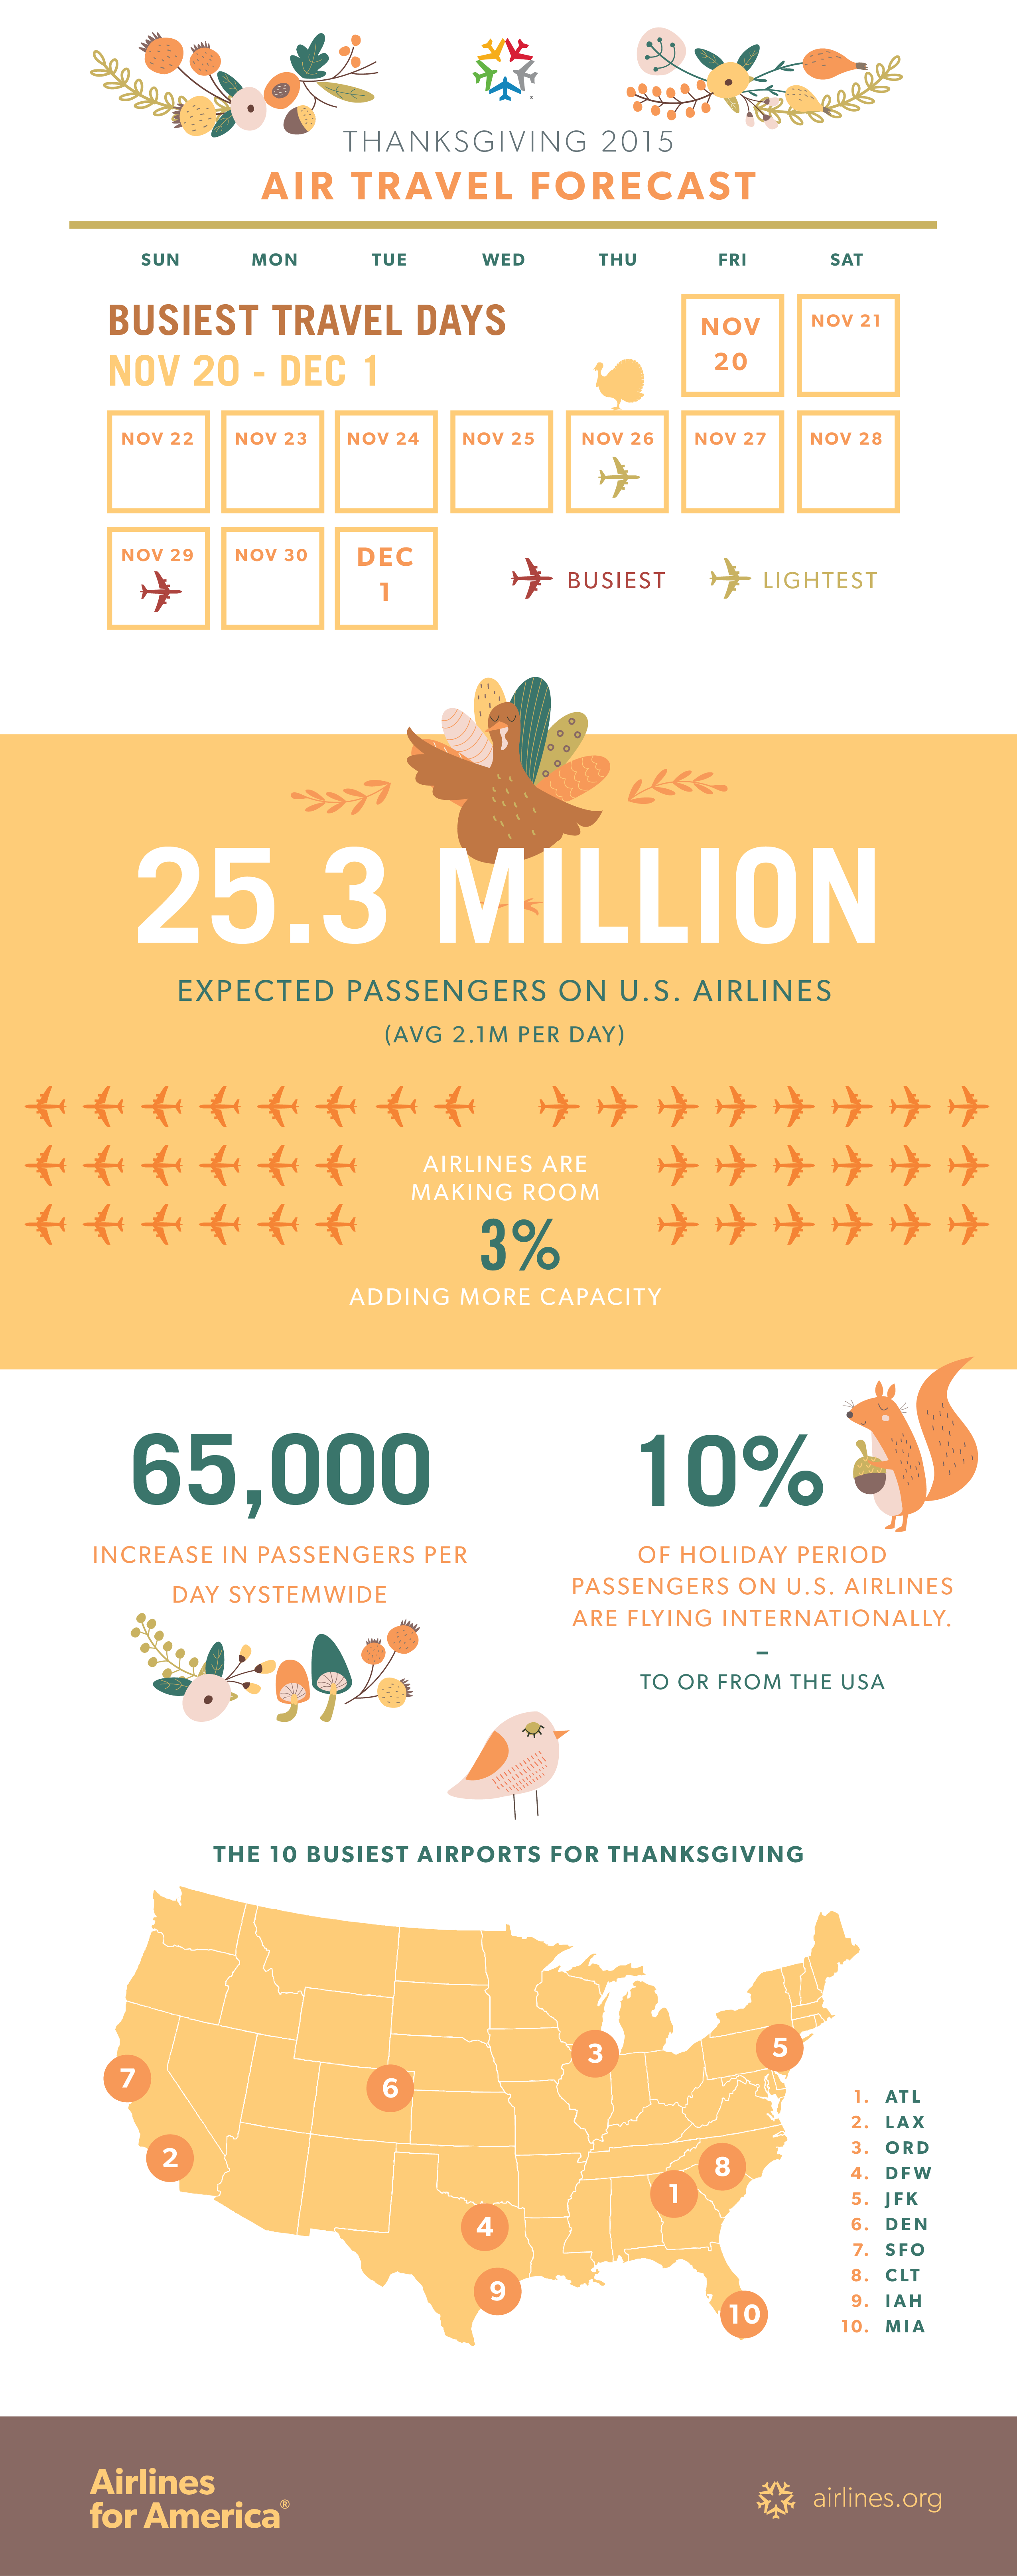 Thanksgiving 2015 Travel Forecast Infographic